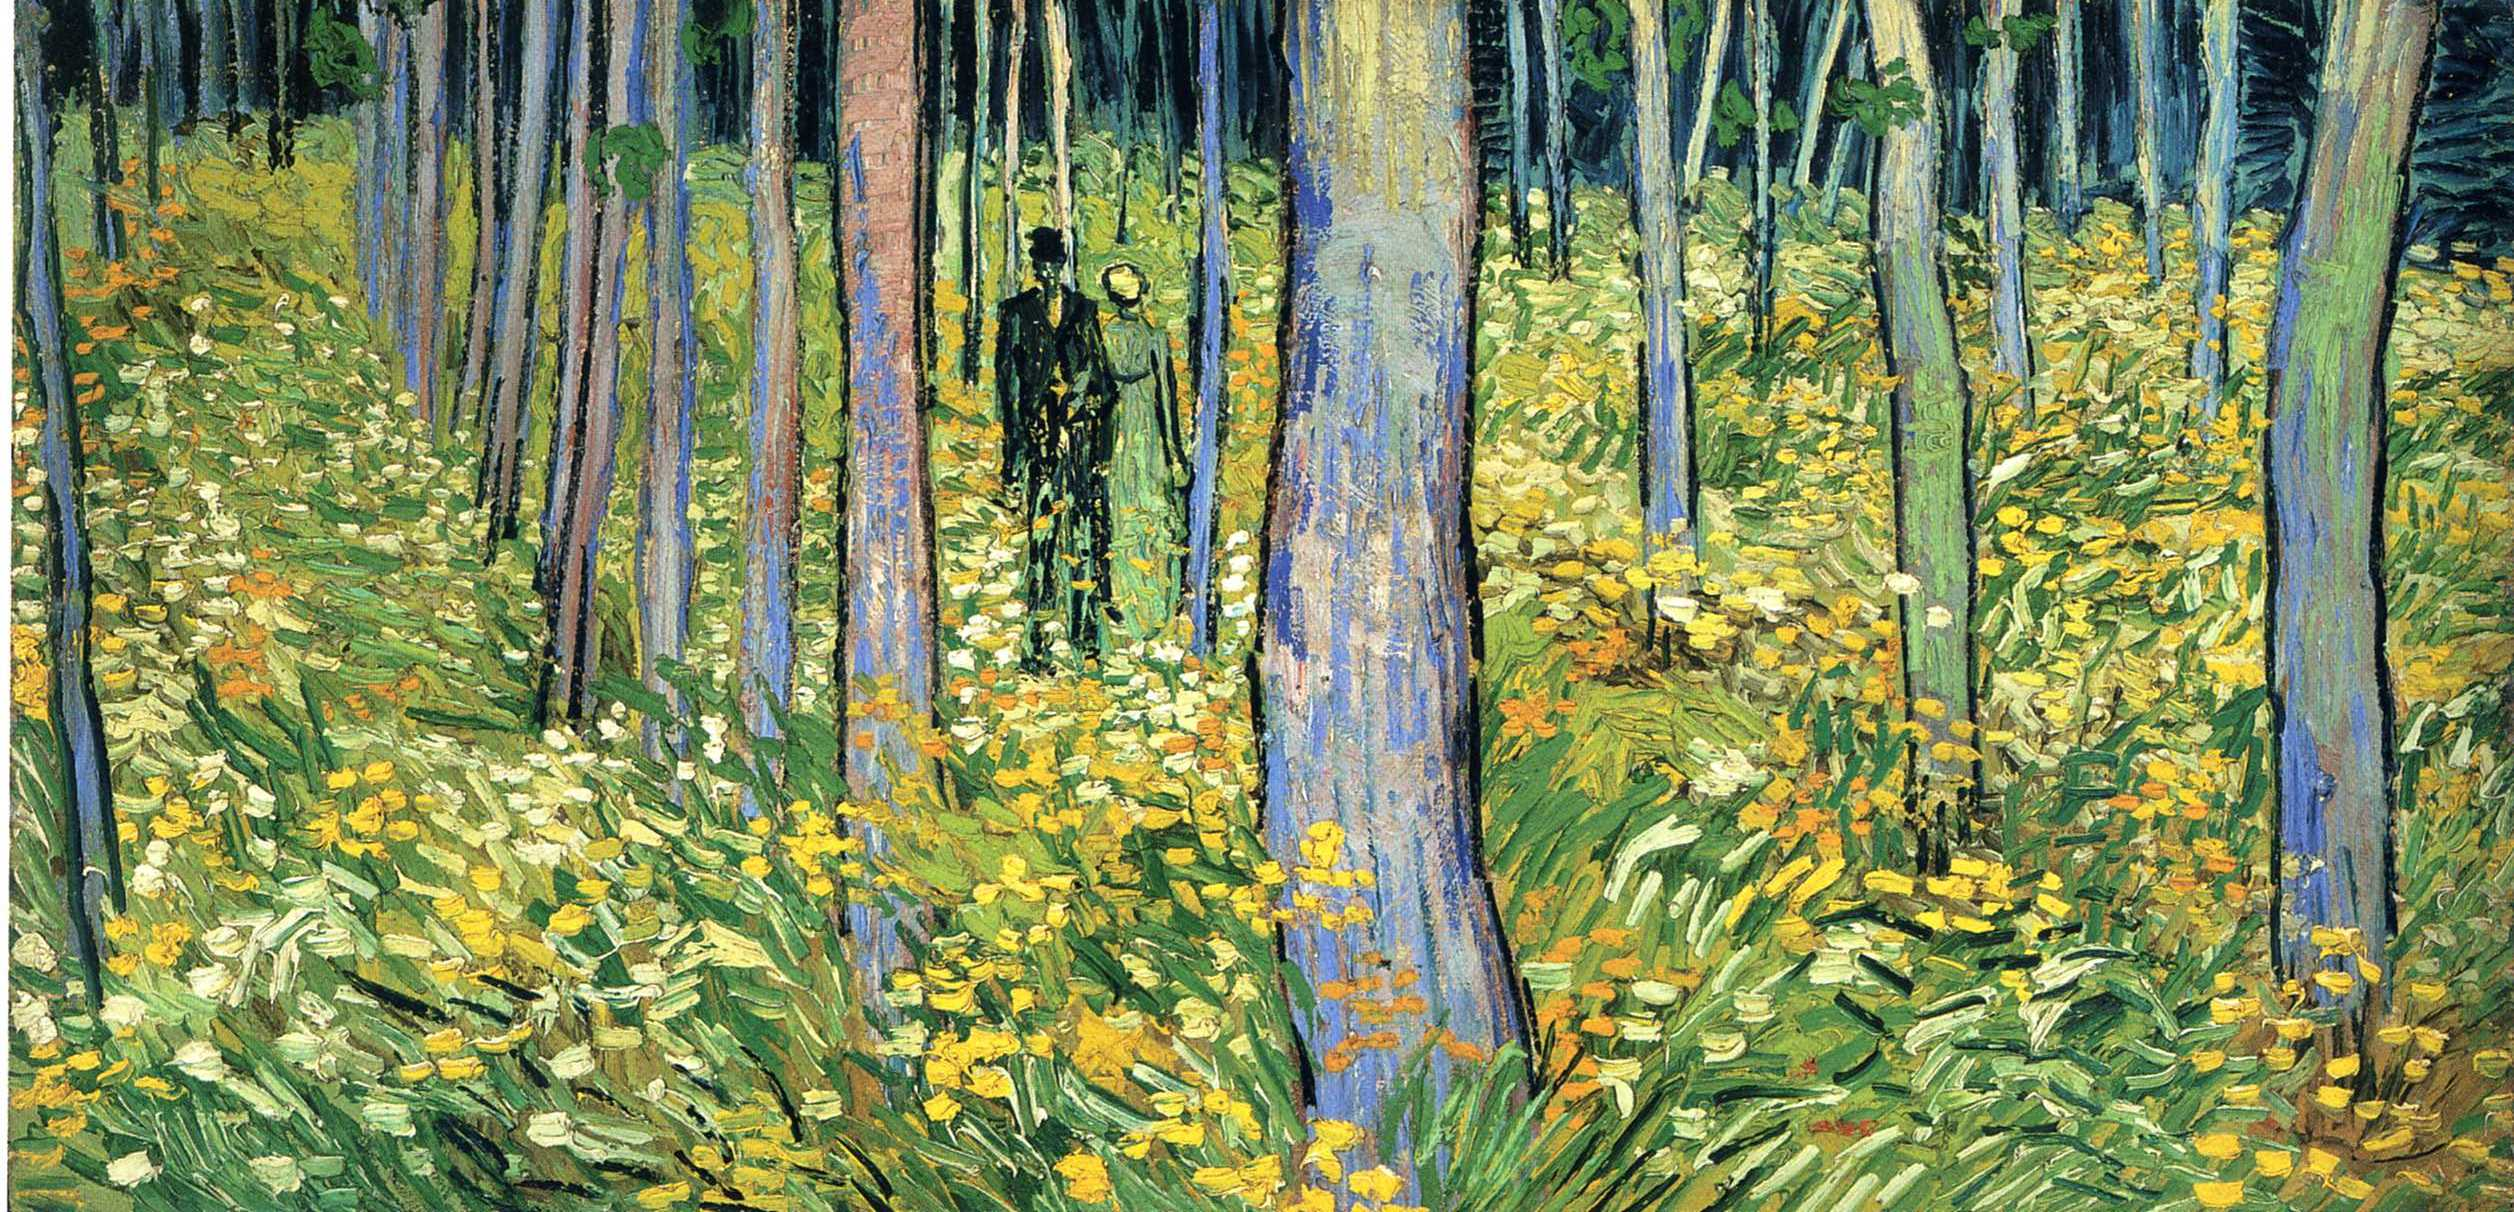 Vincent van Gogh, Undergrowth with Two Figures (1890)